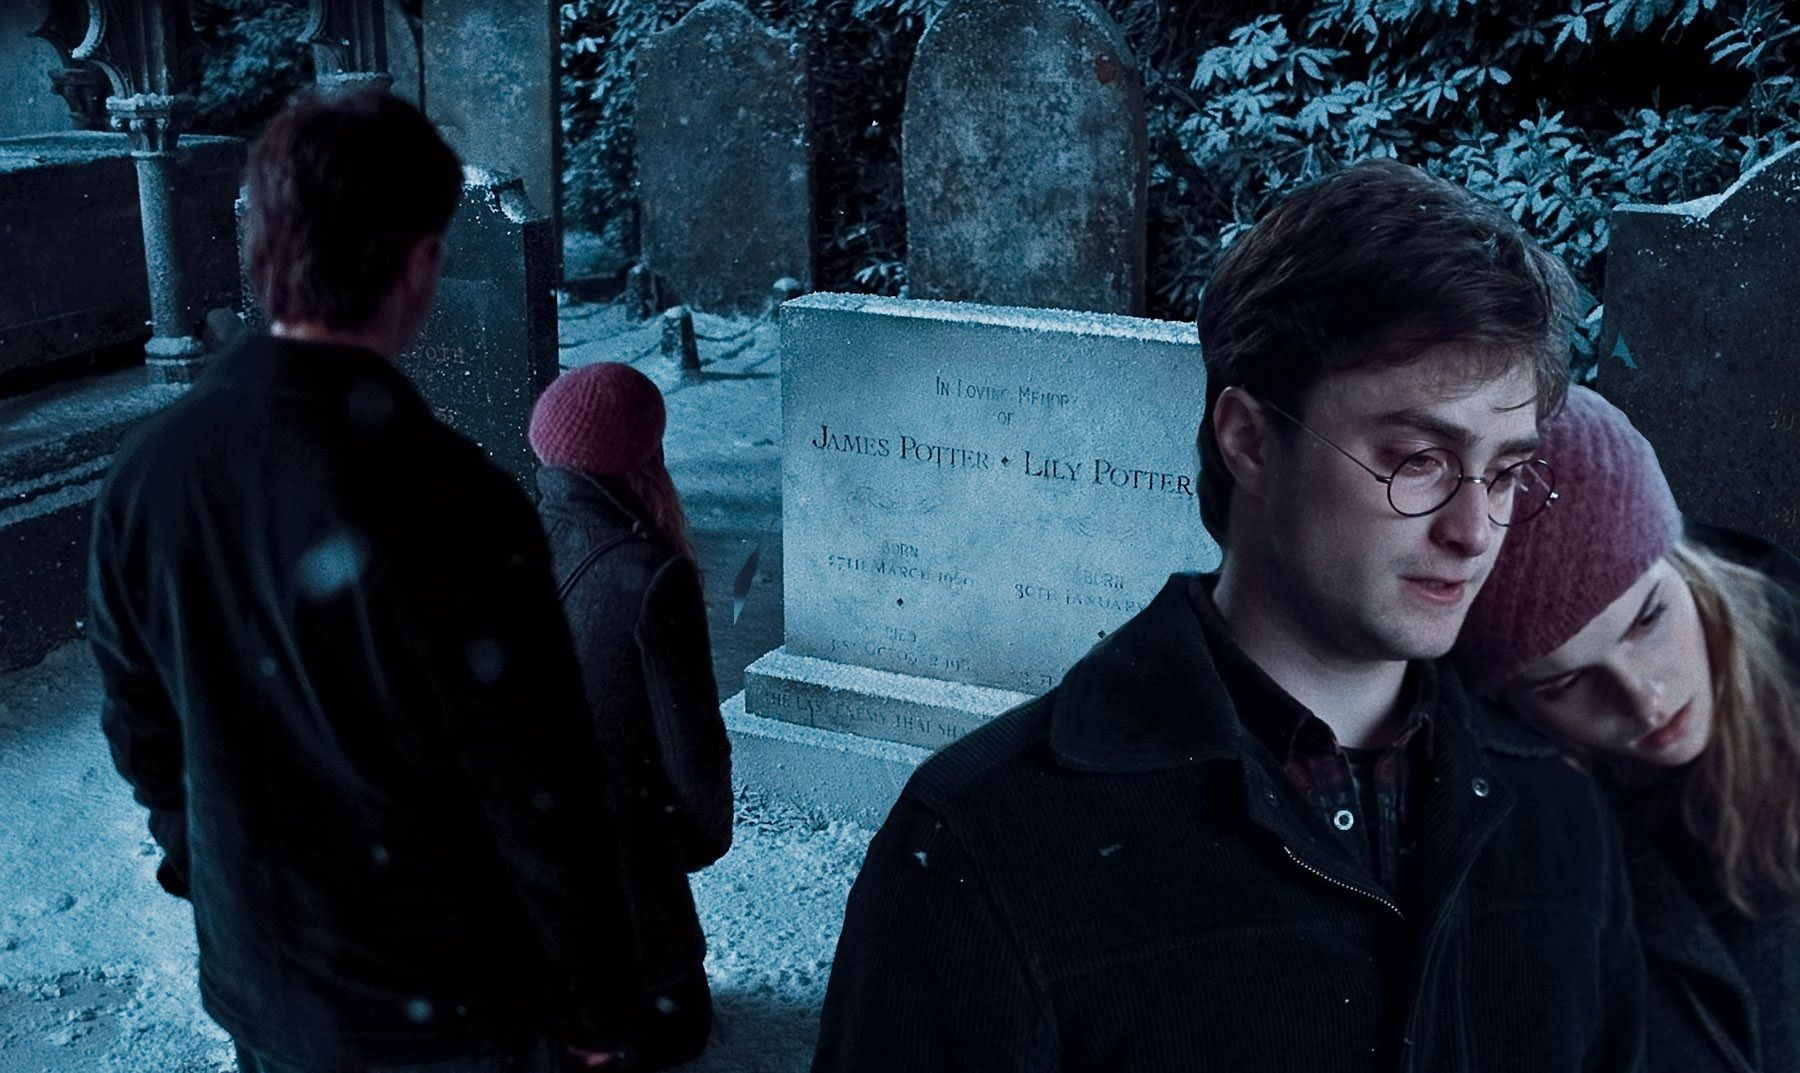 Godric S Hollow Graveyard Scene Hd Harry Potter The Deathly Hallows Harry And Hermione Harry And Ginny Yer A Wizard Harry